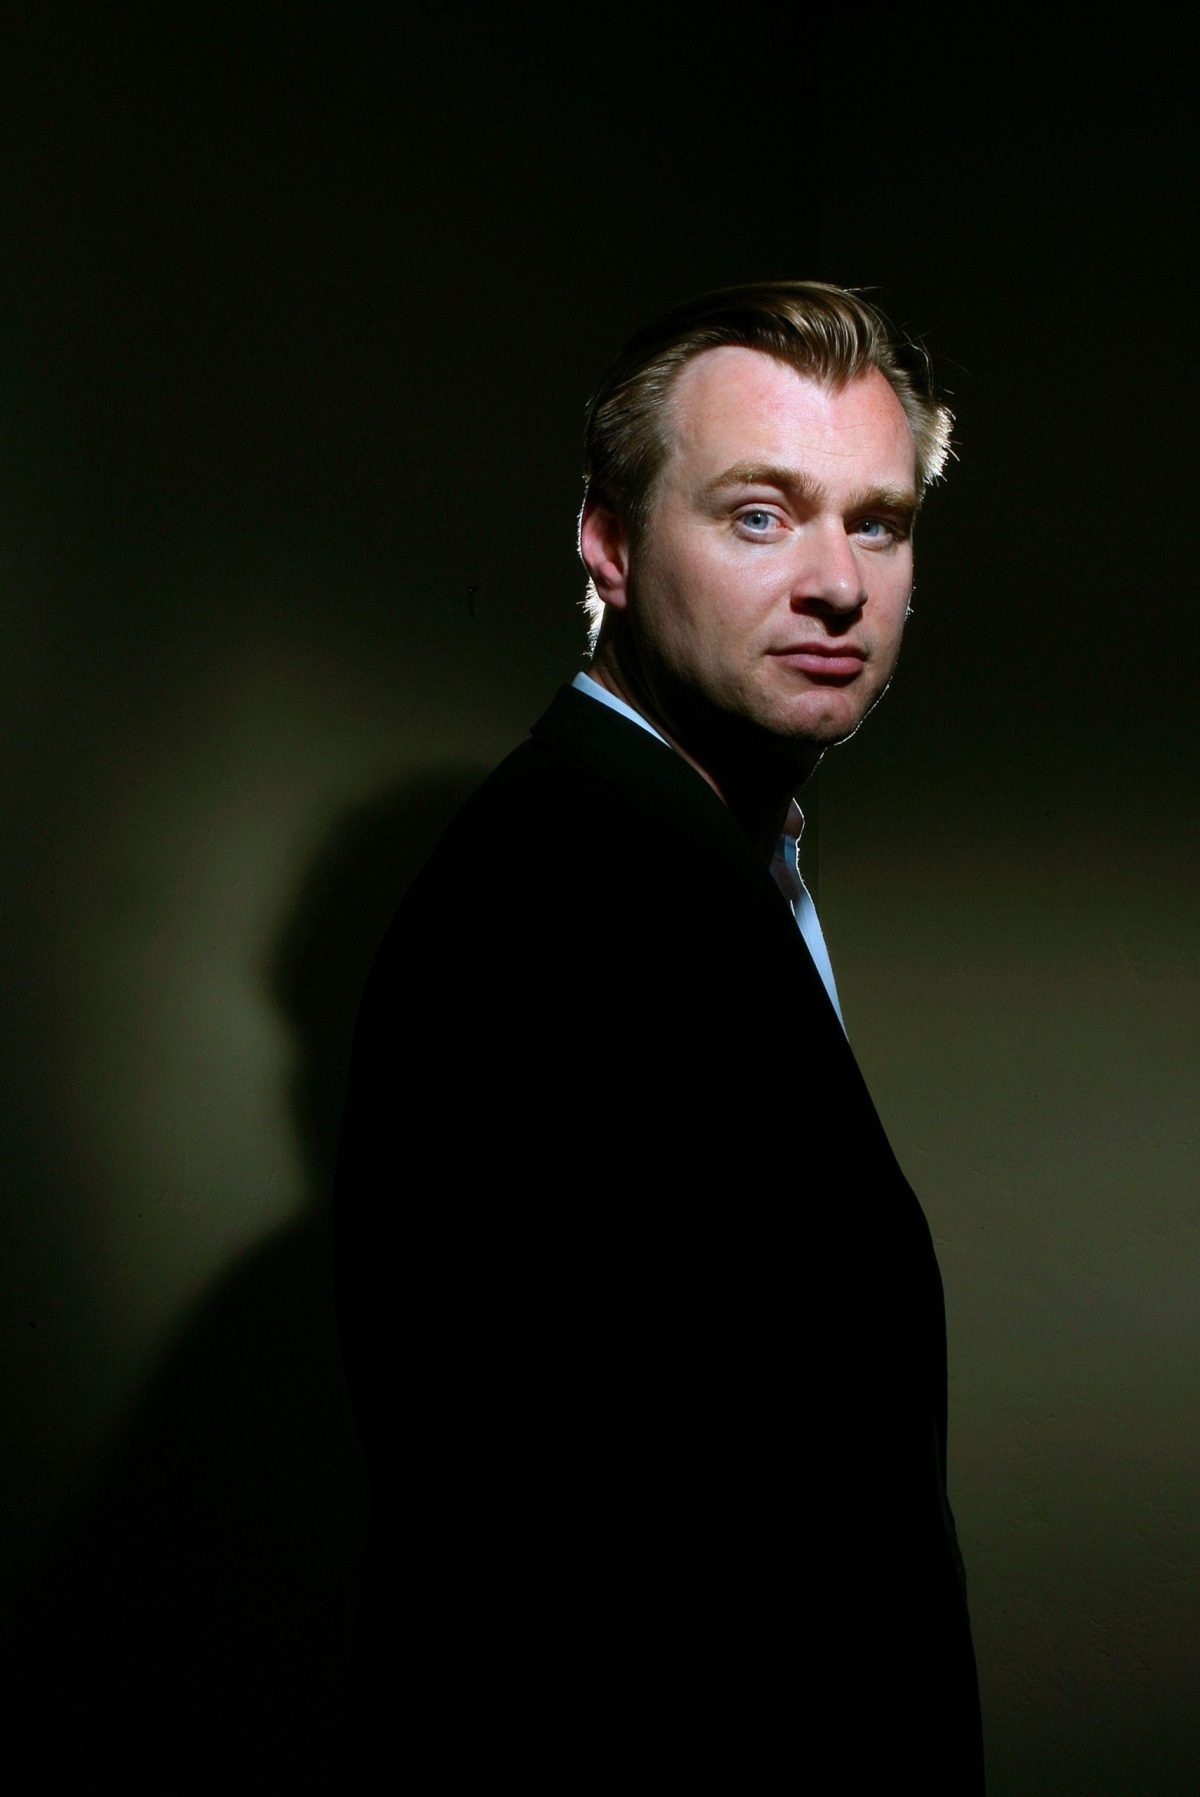 christopher nolan inception analyse